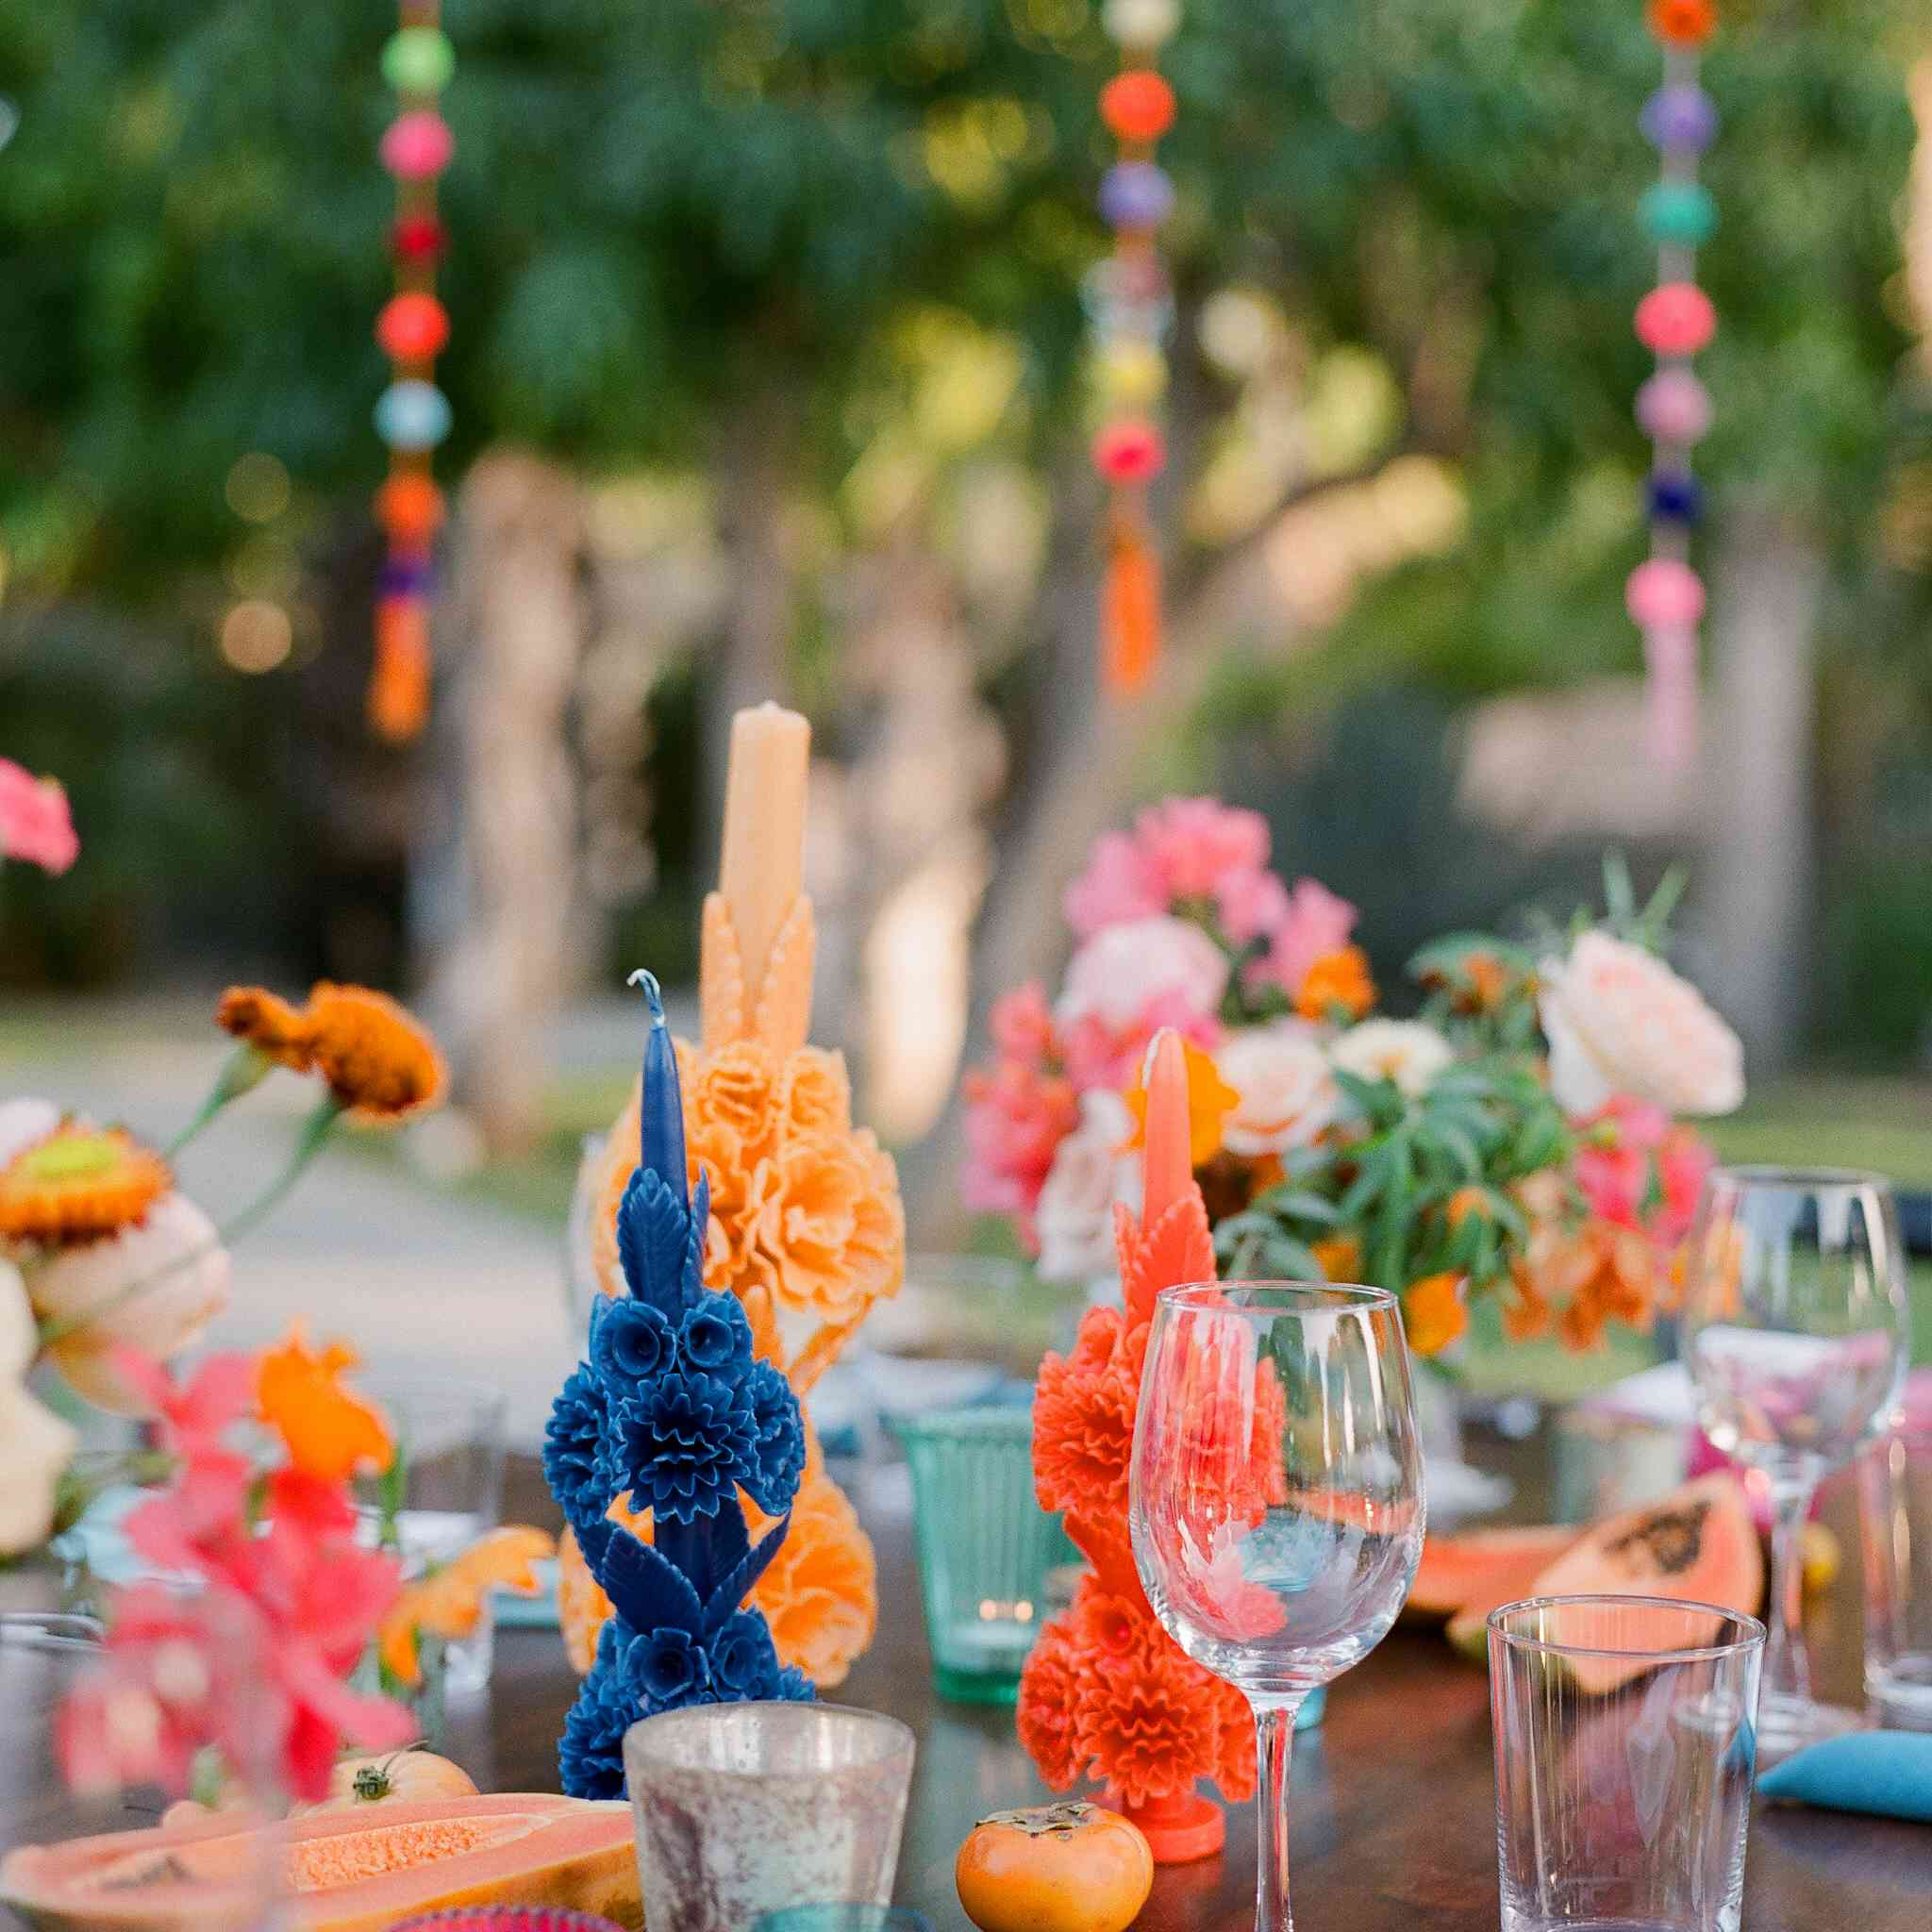 Colorful decorative candles on a set table at a wedding reception